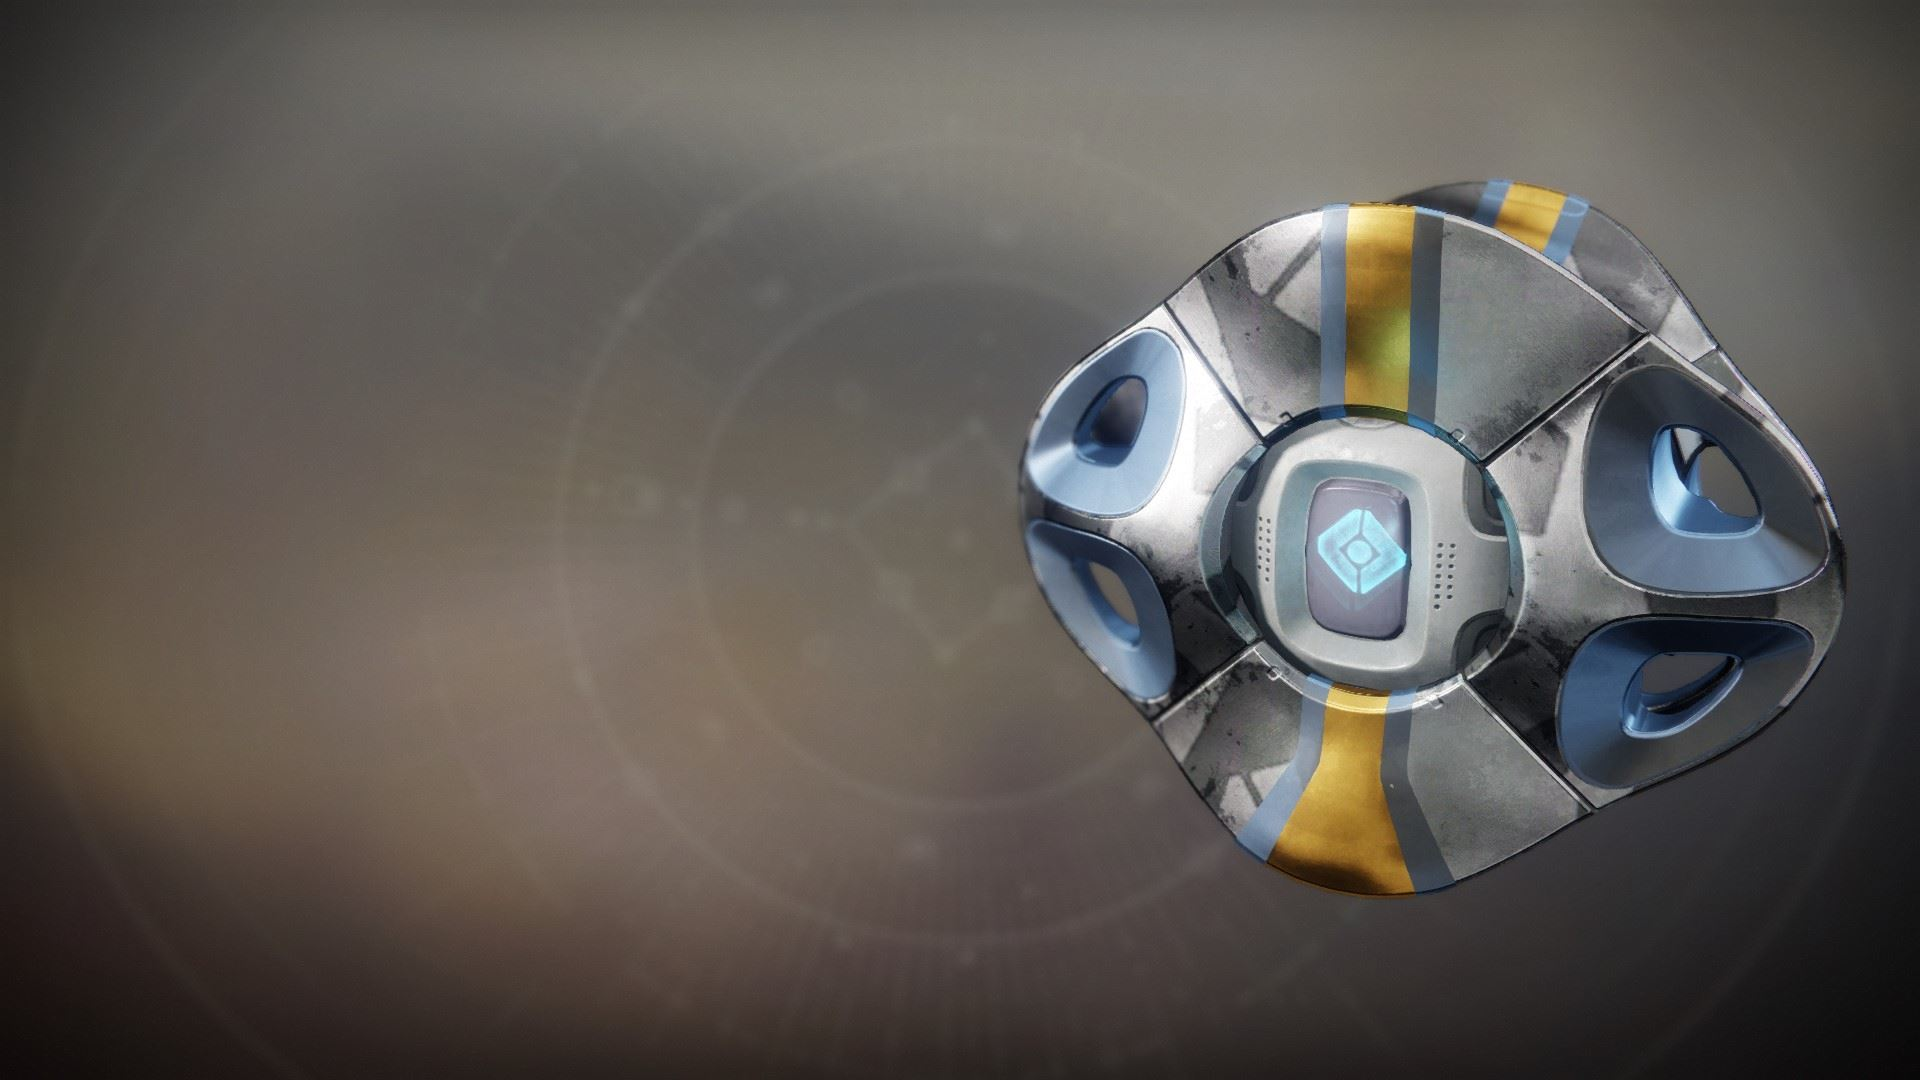 Autumn Gloss Shell Destiny 2 Legendary Ghost Shell Lightgg